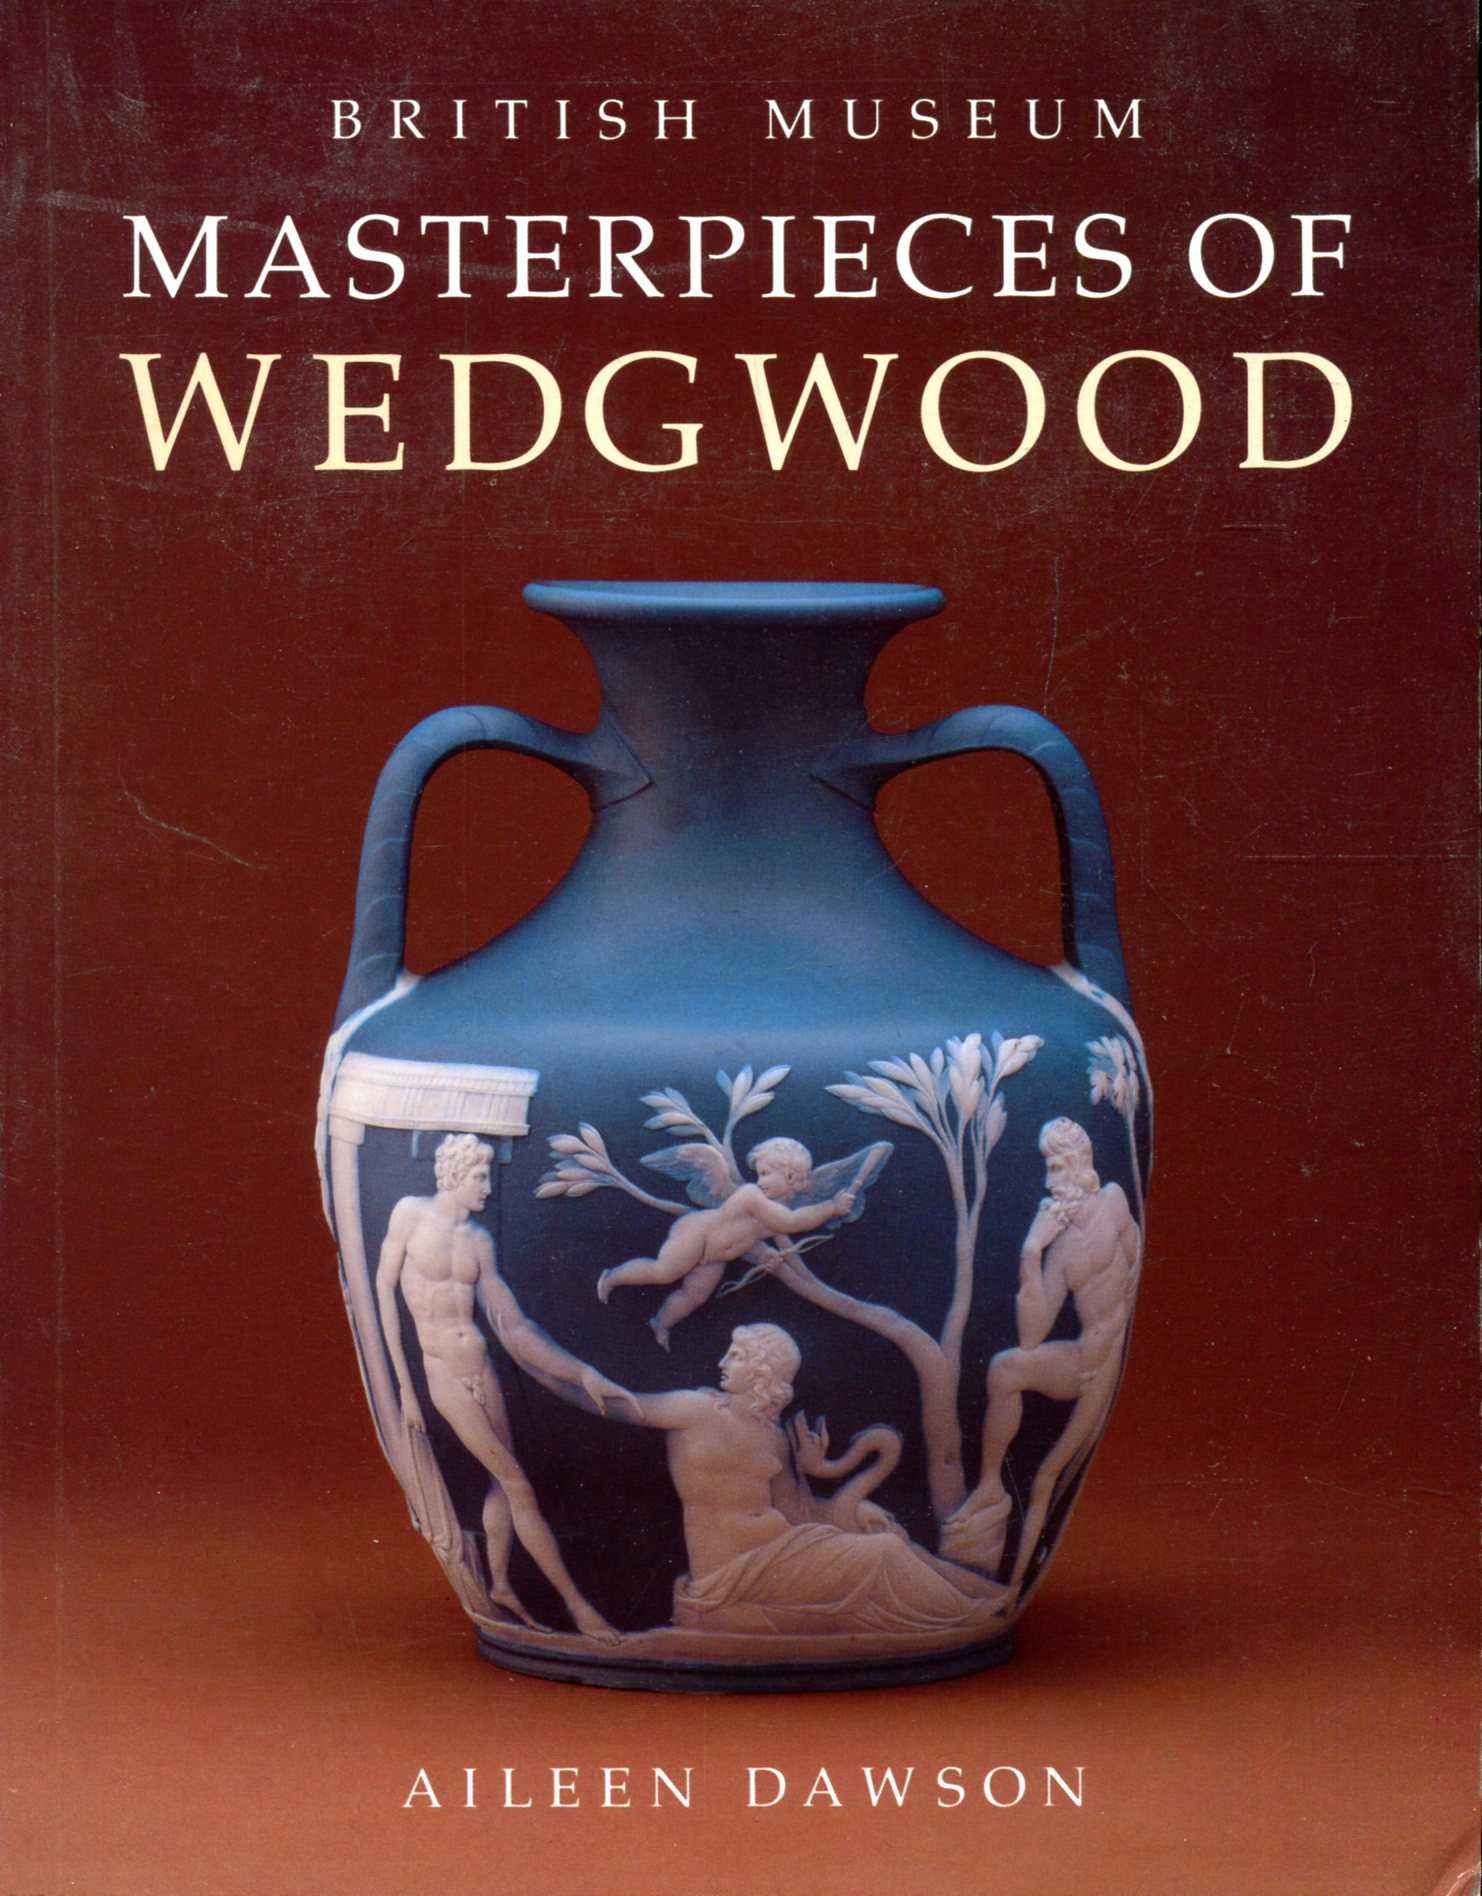 Image for Masterpieces of Wedgwood in the British Museum